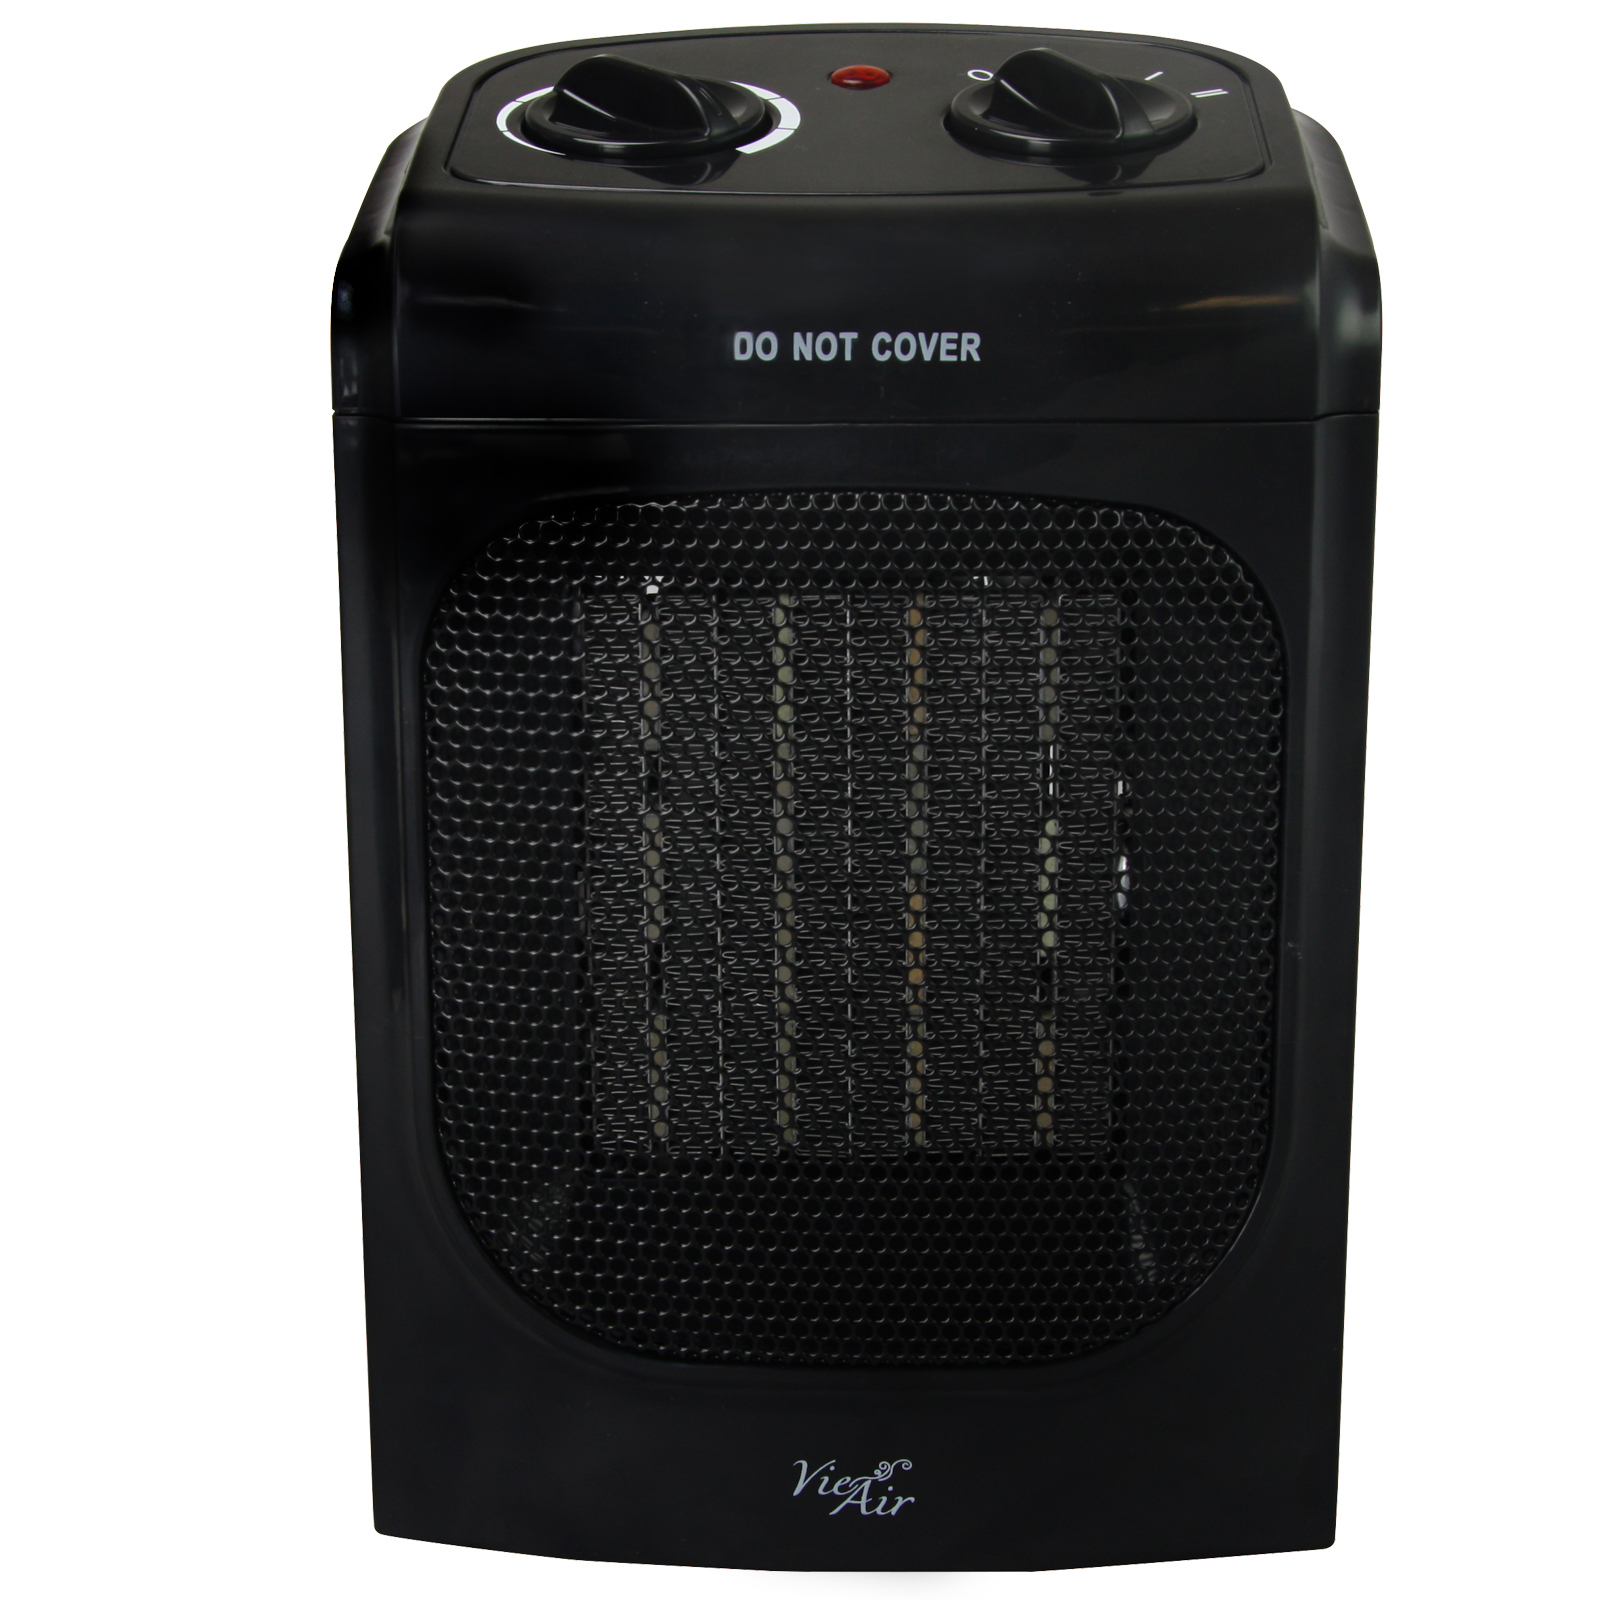 Vie Air 1500W Portable 2-Settings Home Black Ceramic Heater with Adjustable Thermostat